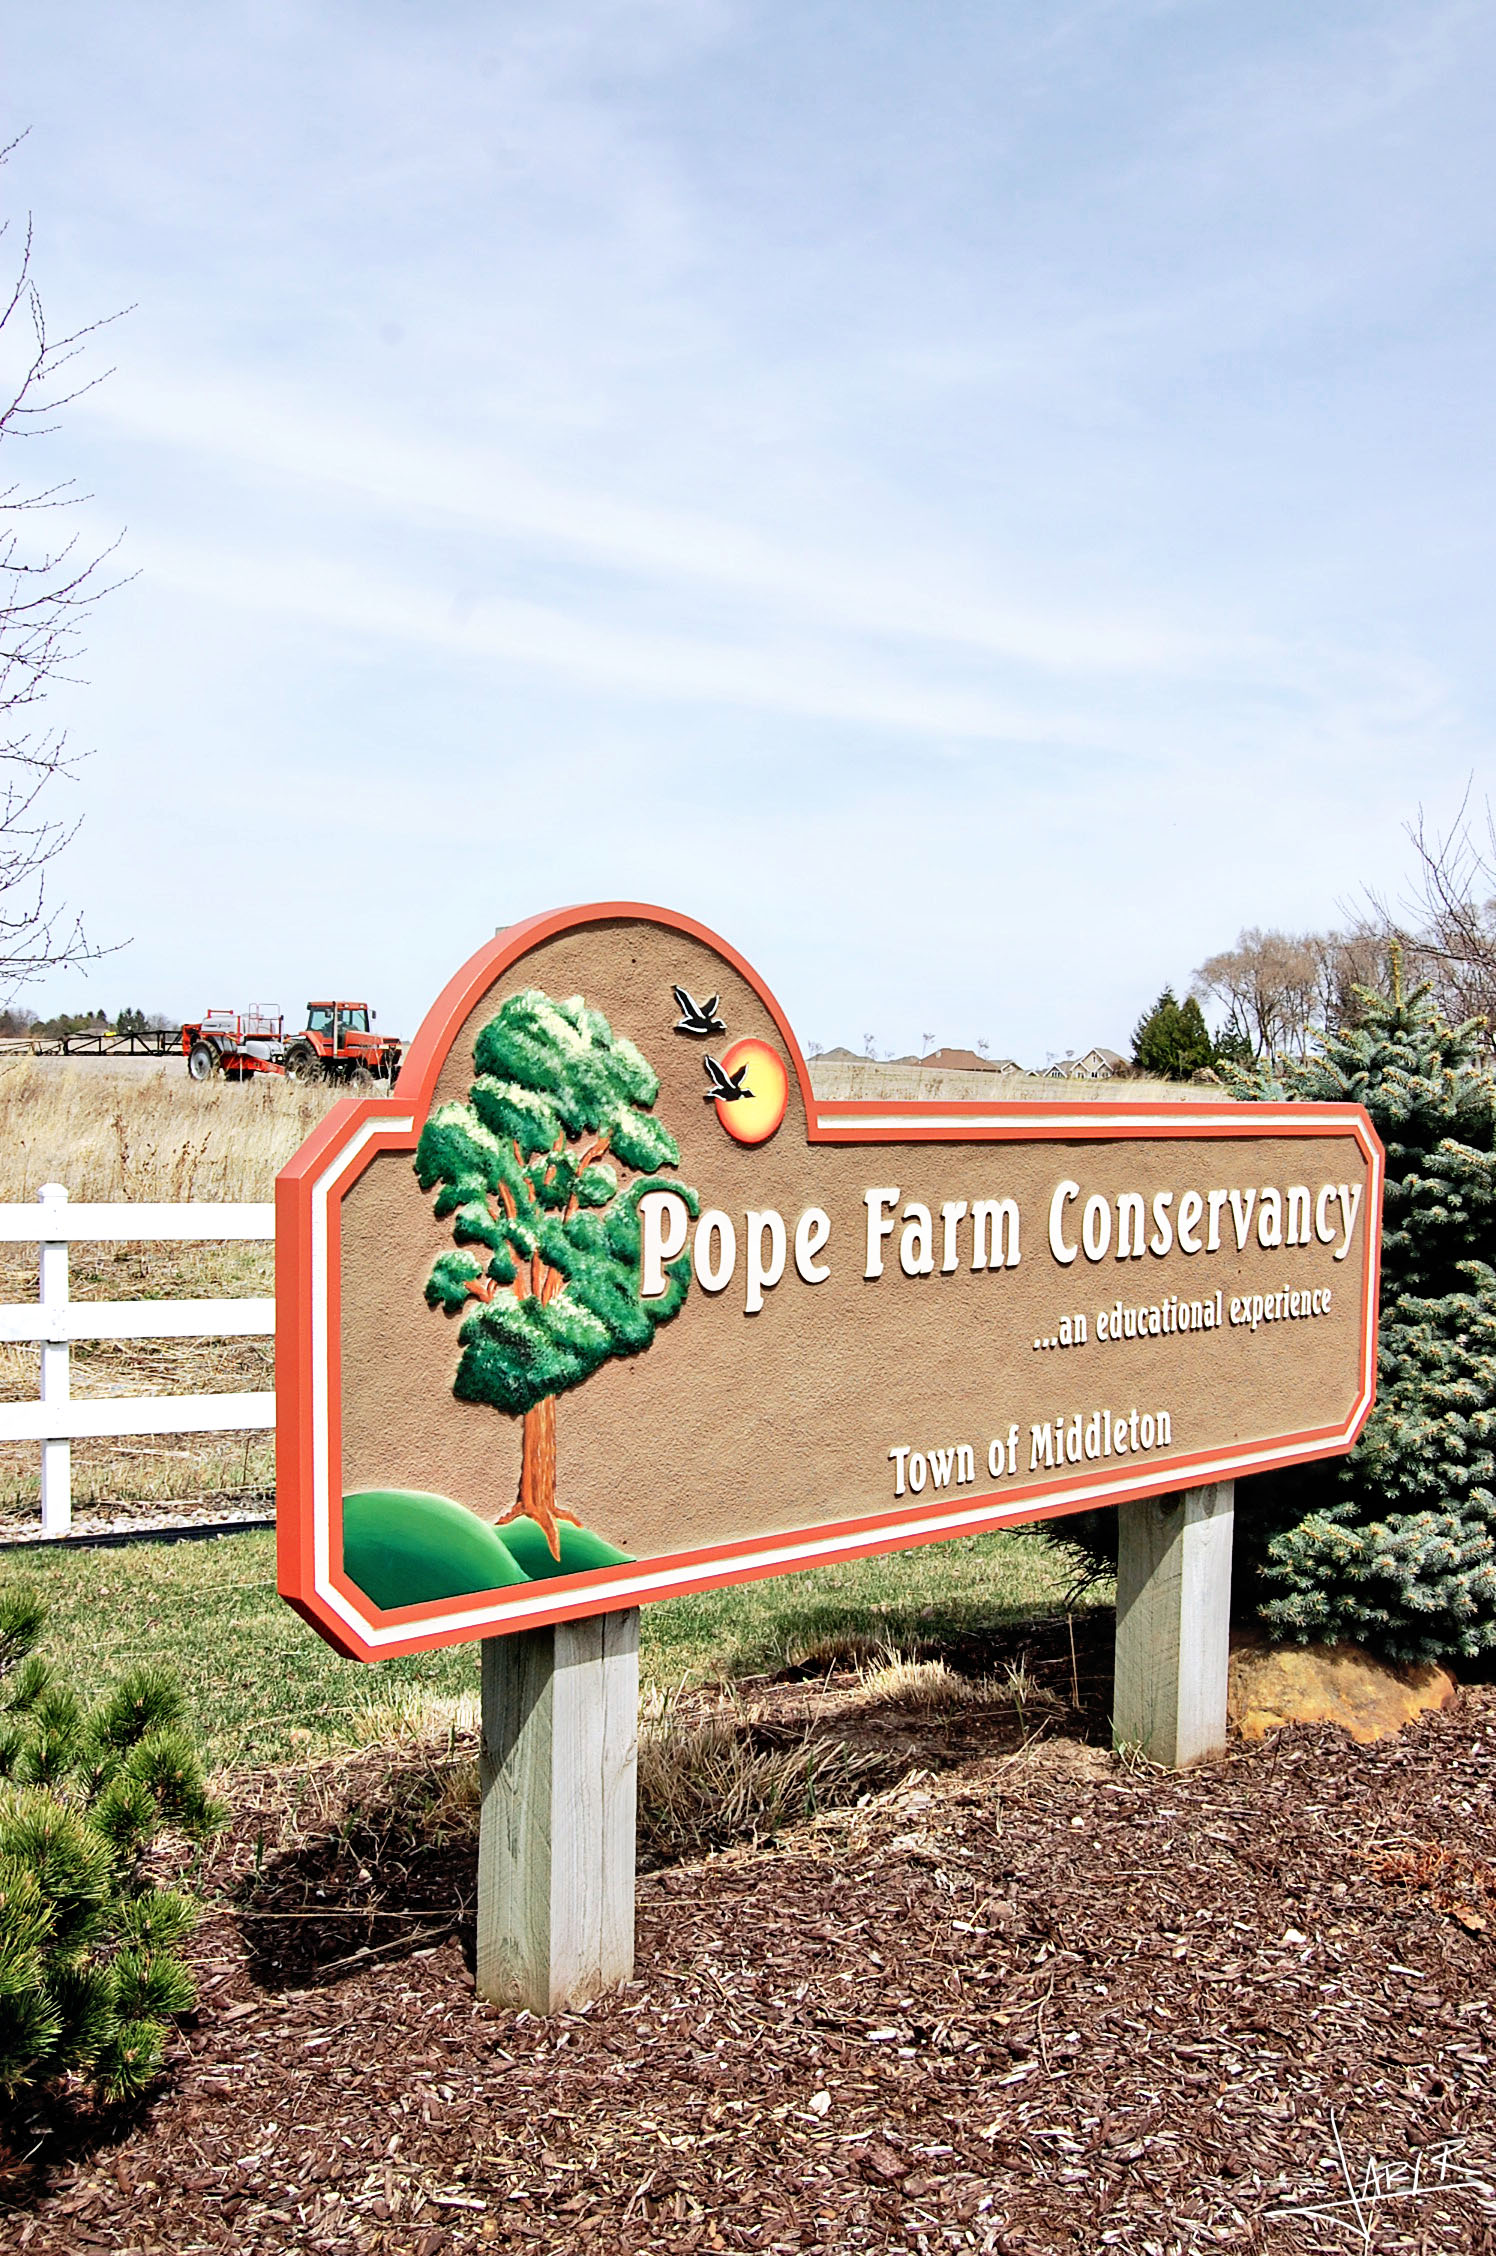 PopeFarmConservancy_1